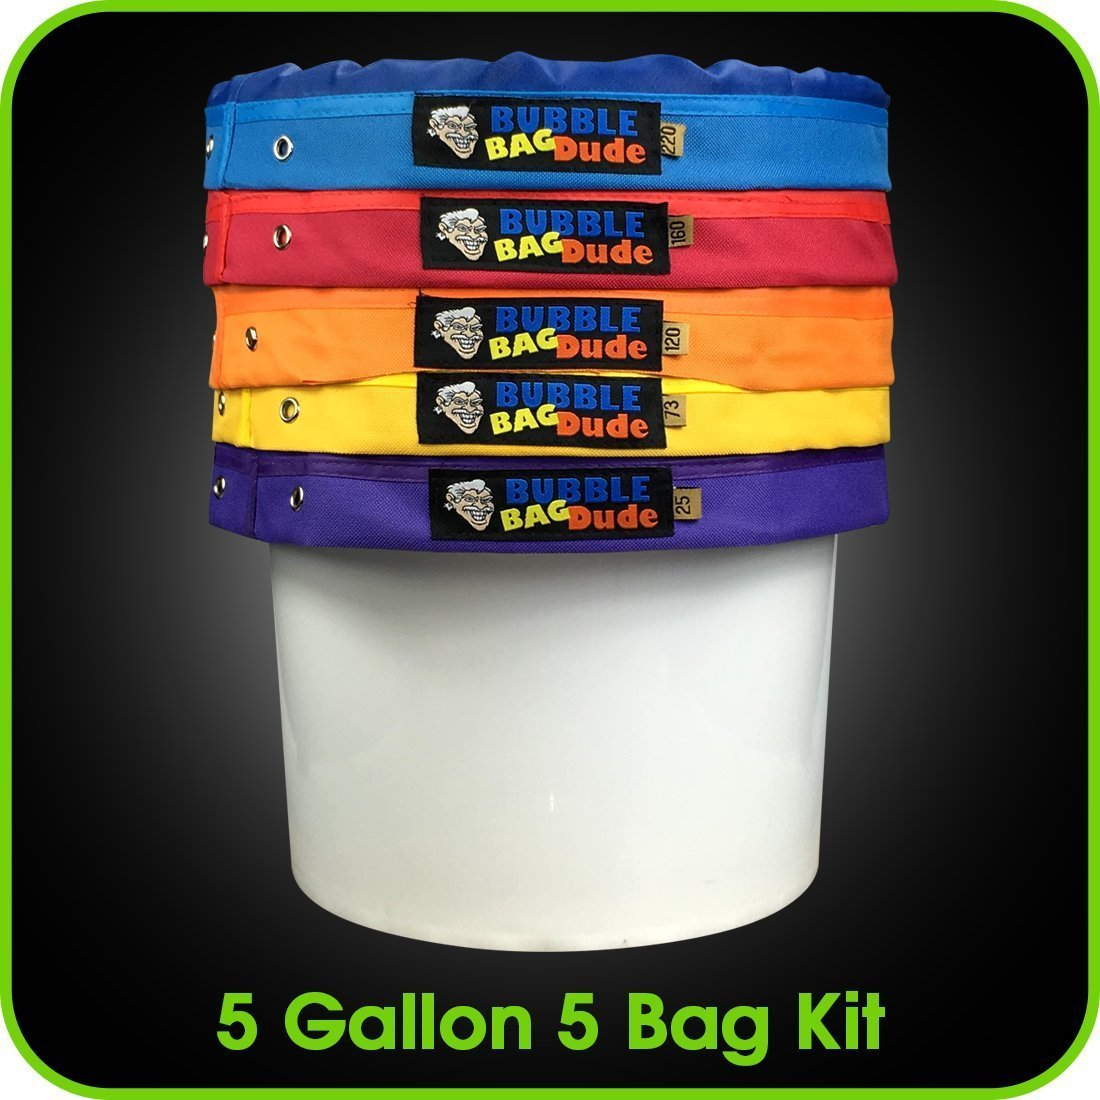 BUBBLEBAGDUDE Bubble Bags 5 Gallon 5 Bag Set - Herbal Ice Bubble Bag Essence Extractor Kit - Comes with Pressing Screen and Storage Bag David Wilson Inc. BBDBIB02